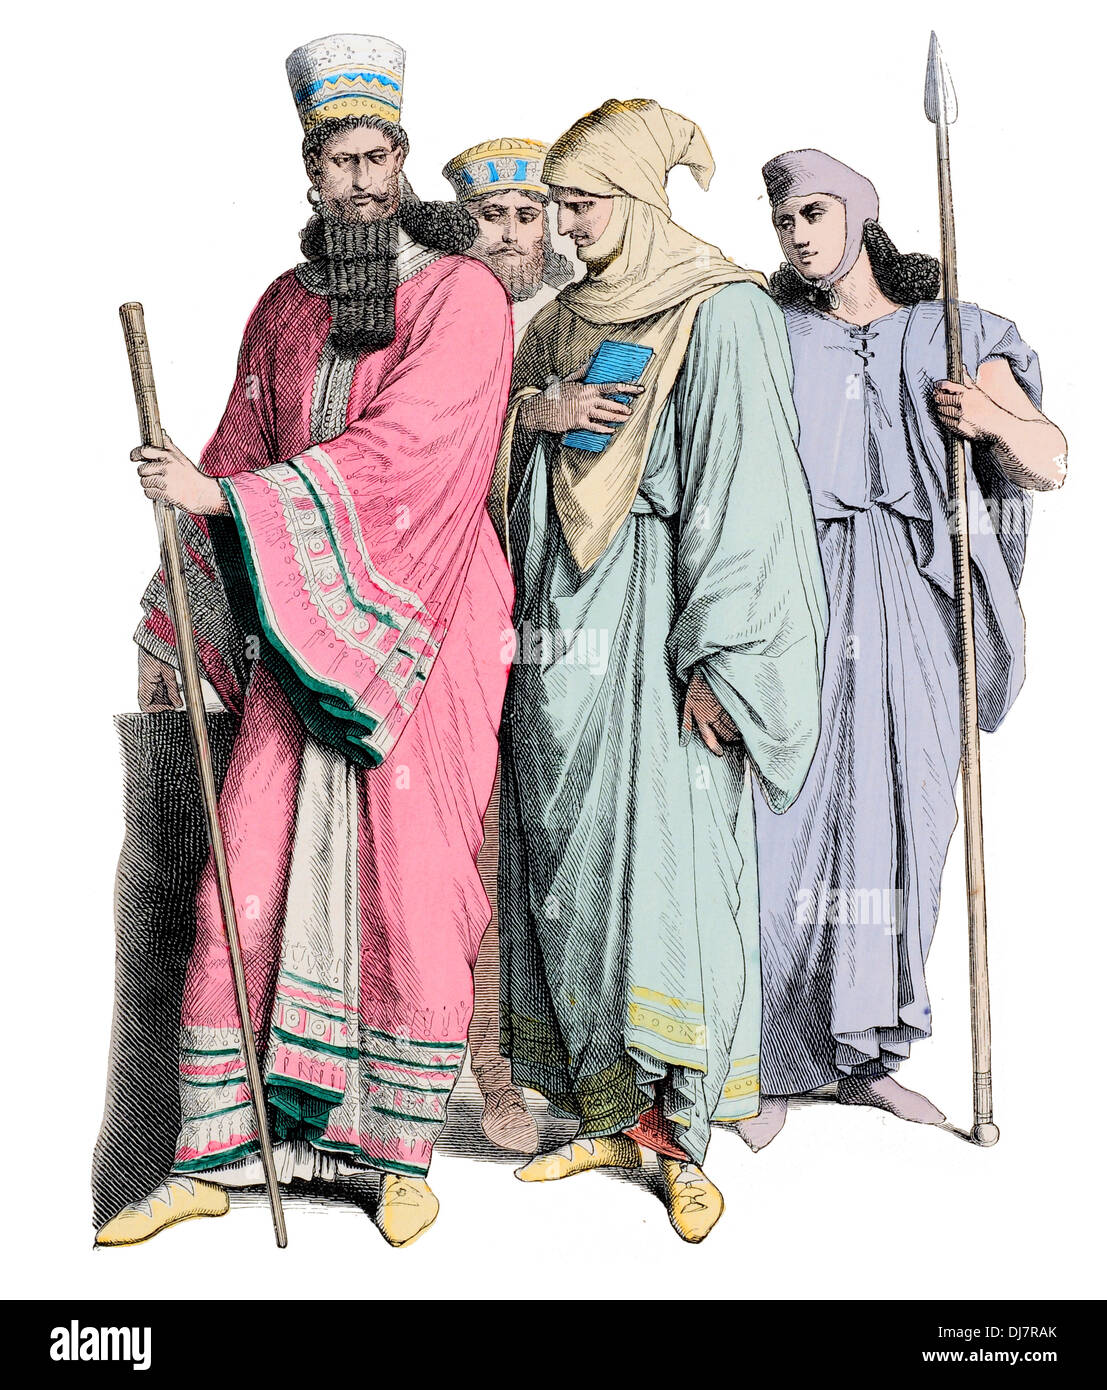 Pre Christian BC Meder Ancient Persia men of Rank - Stock Image